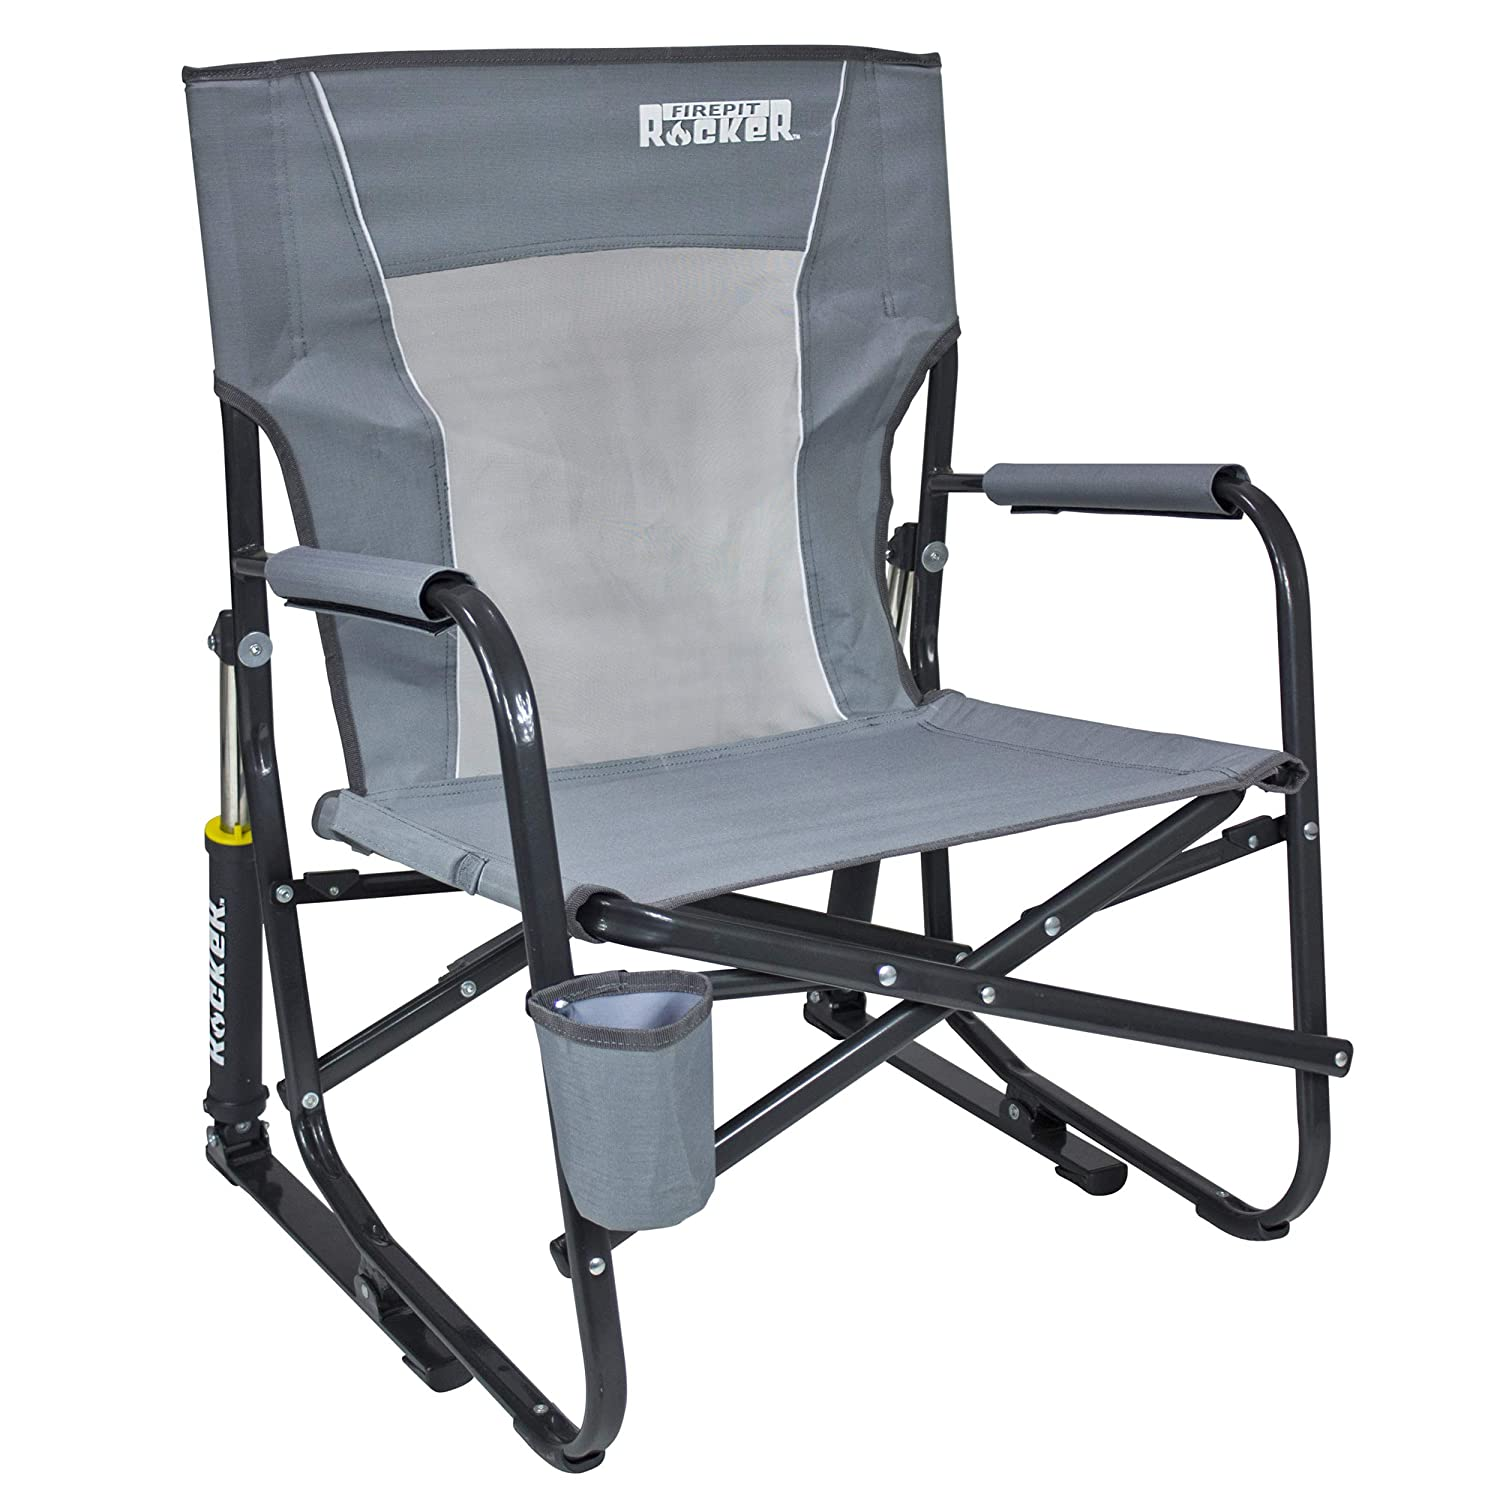 Brilliant Gci Outdoors Firepit Rocker Portable Folding Low Rocking Caraccident5 Cool Chair Designs And Ideas Caraccident5Info